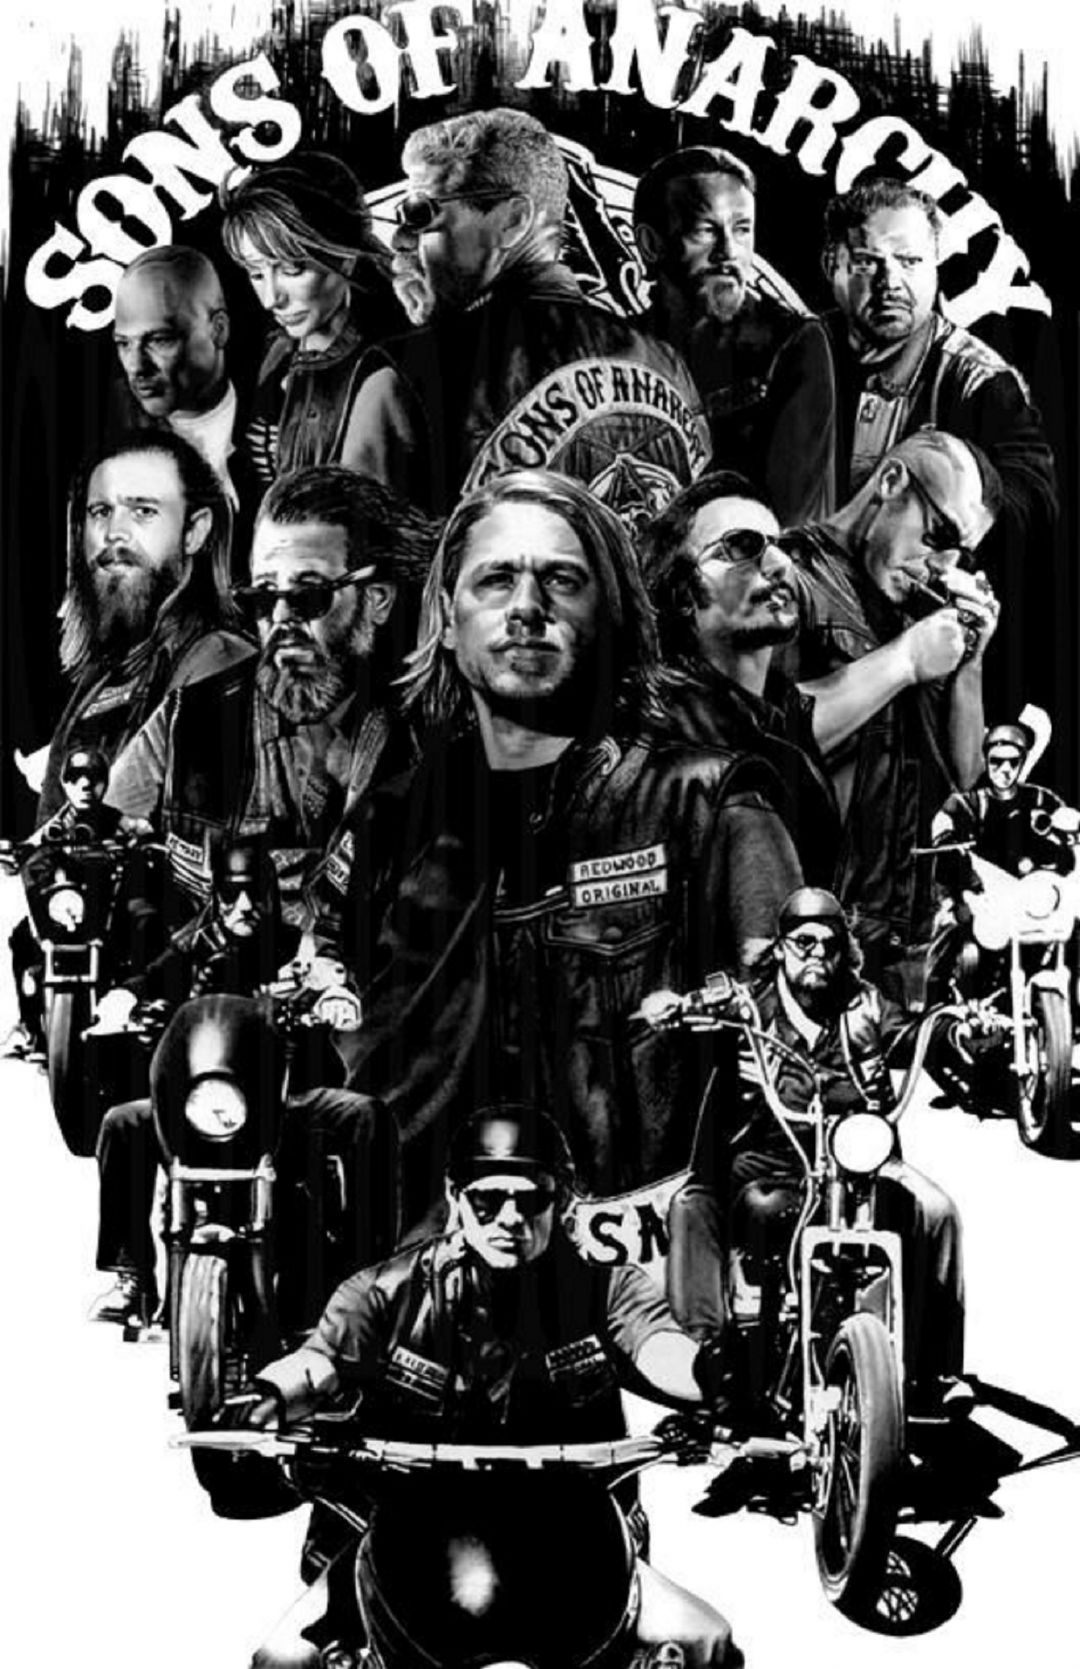 65 Sons Of Anarchy Wallpaper Iphone Android Iphone